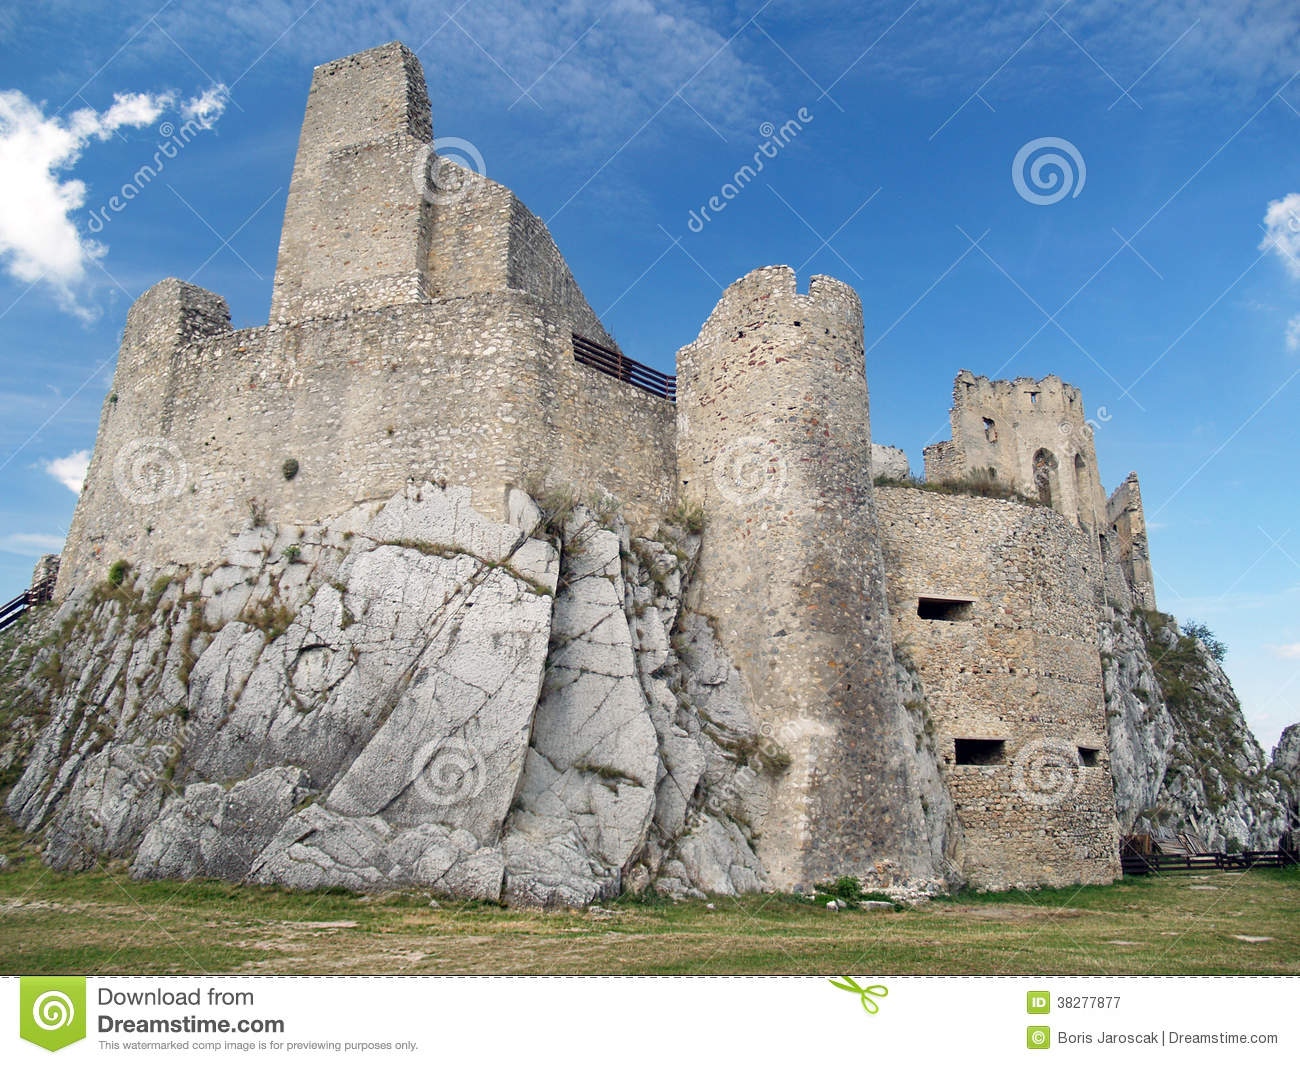 Courtyard and ruin of the Castle of Beckov